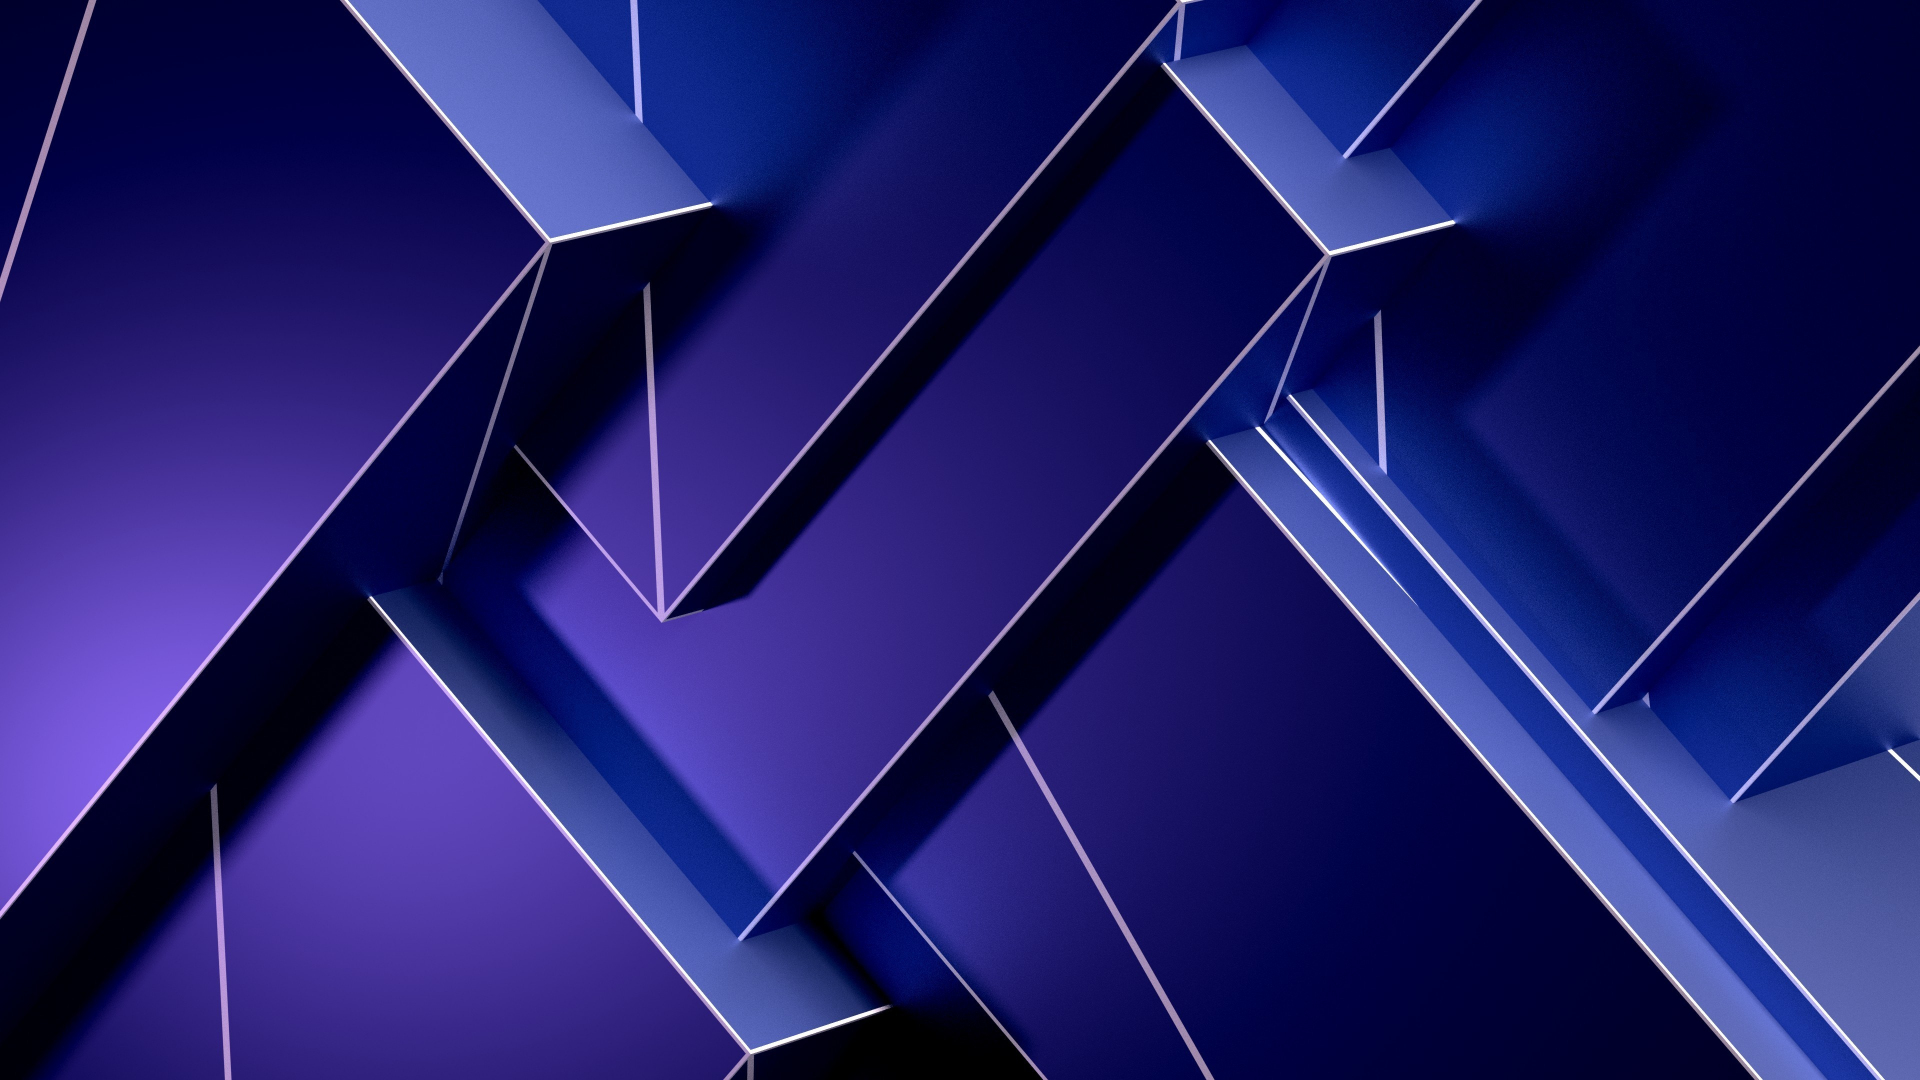 Download 1920x1080 Wallpaper Pattern Geometry Abstract